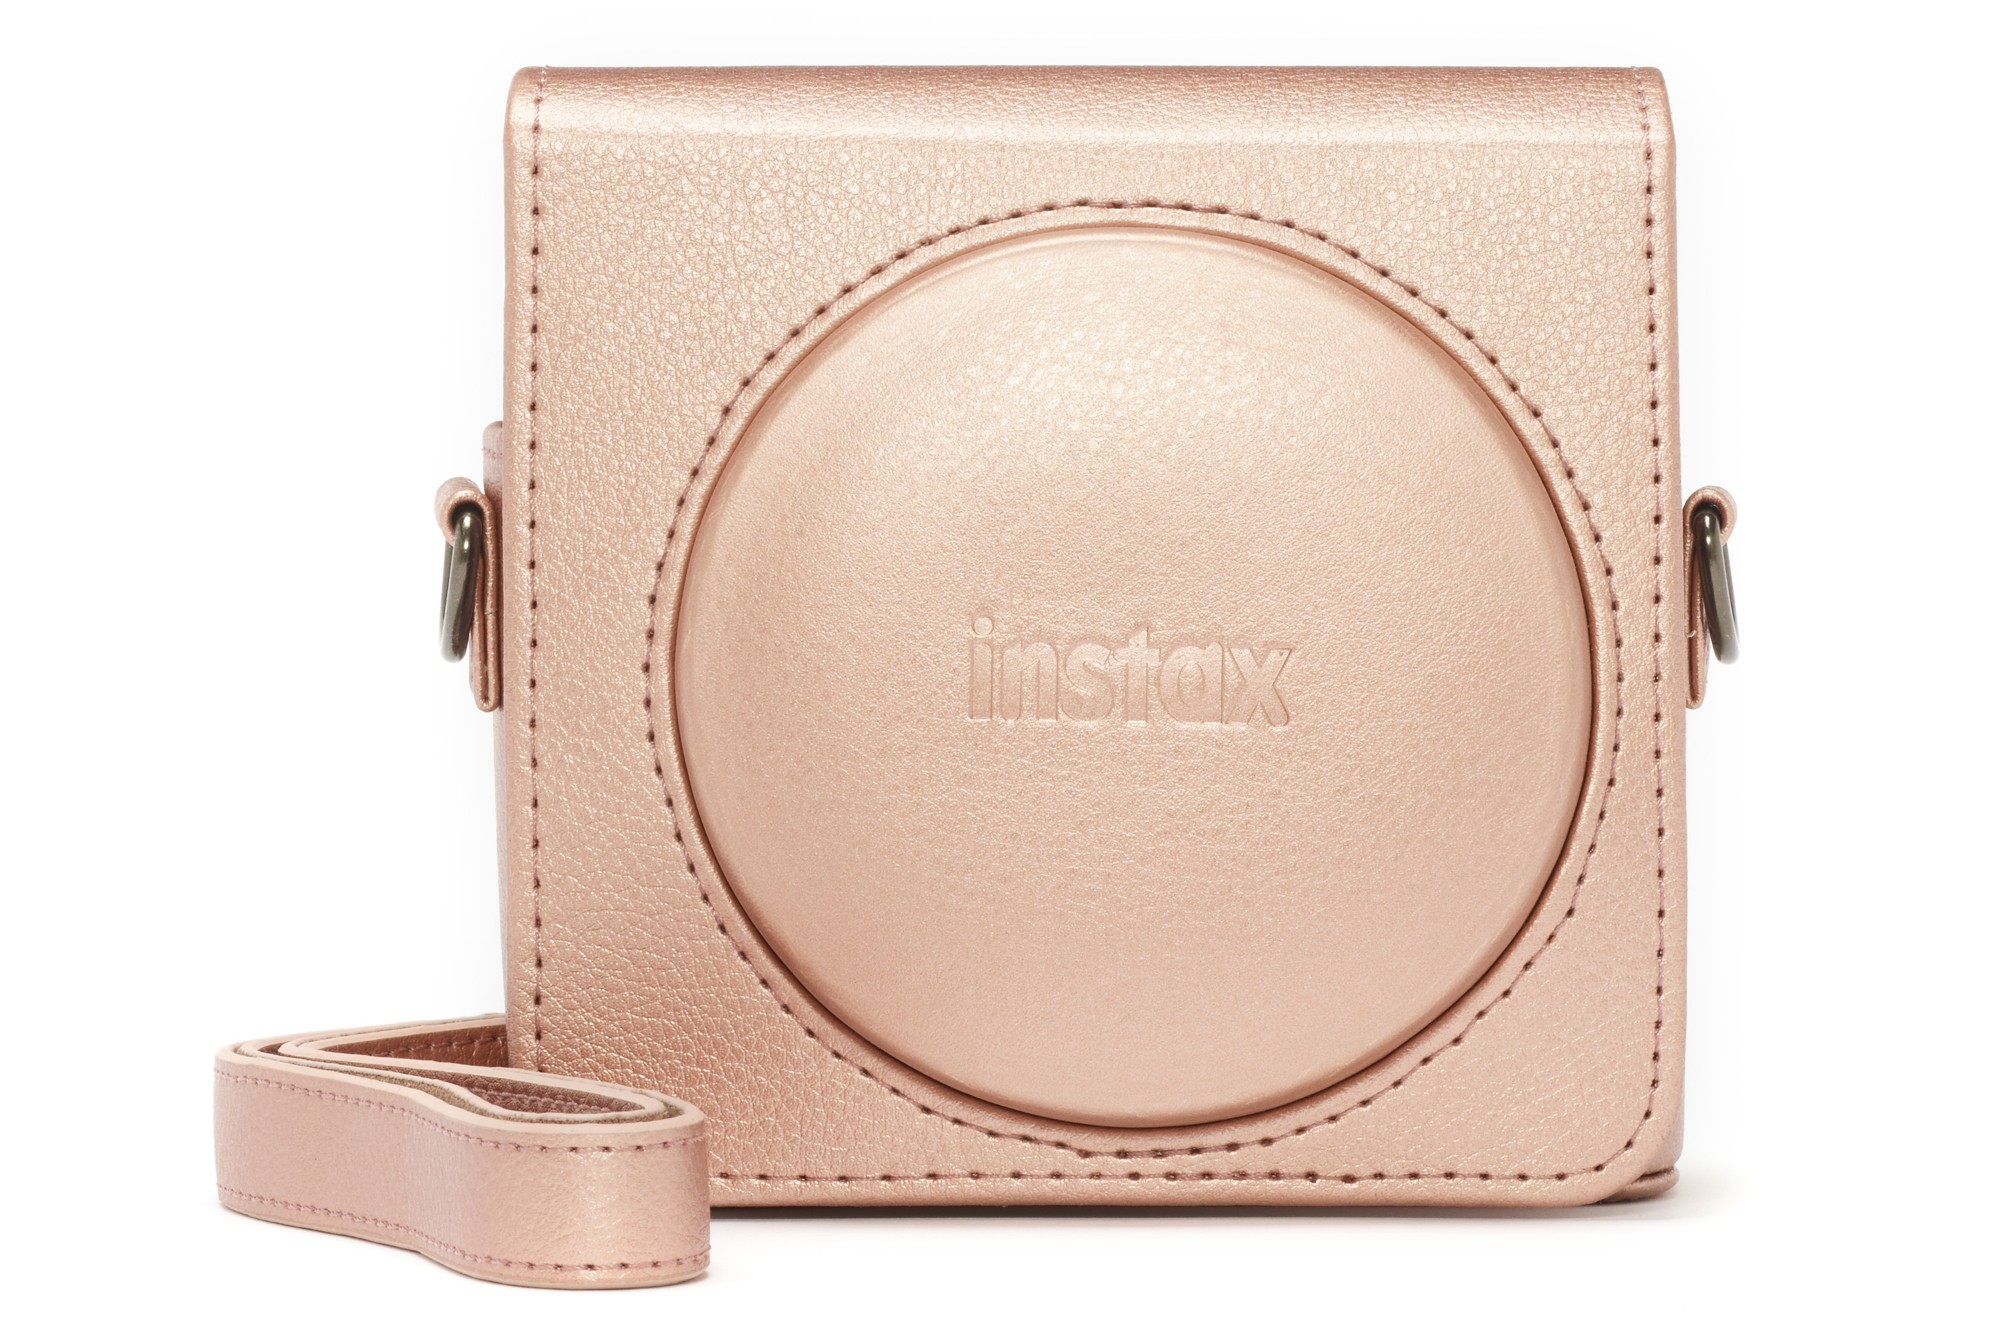 Instax SQ 6 Bag gold